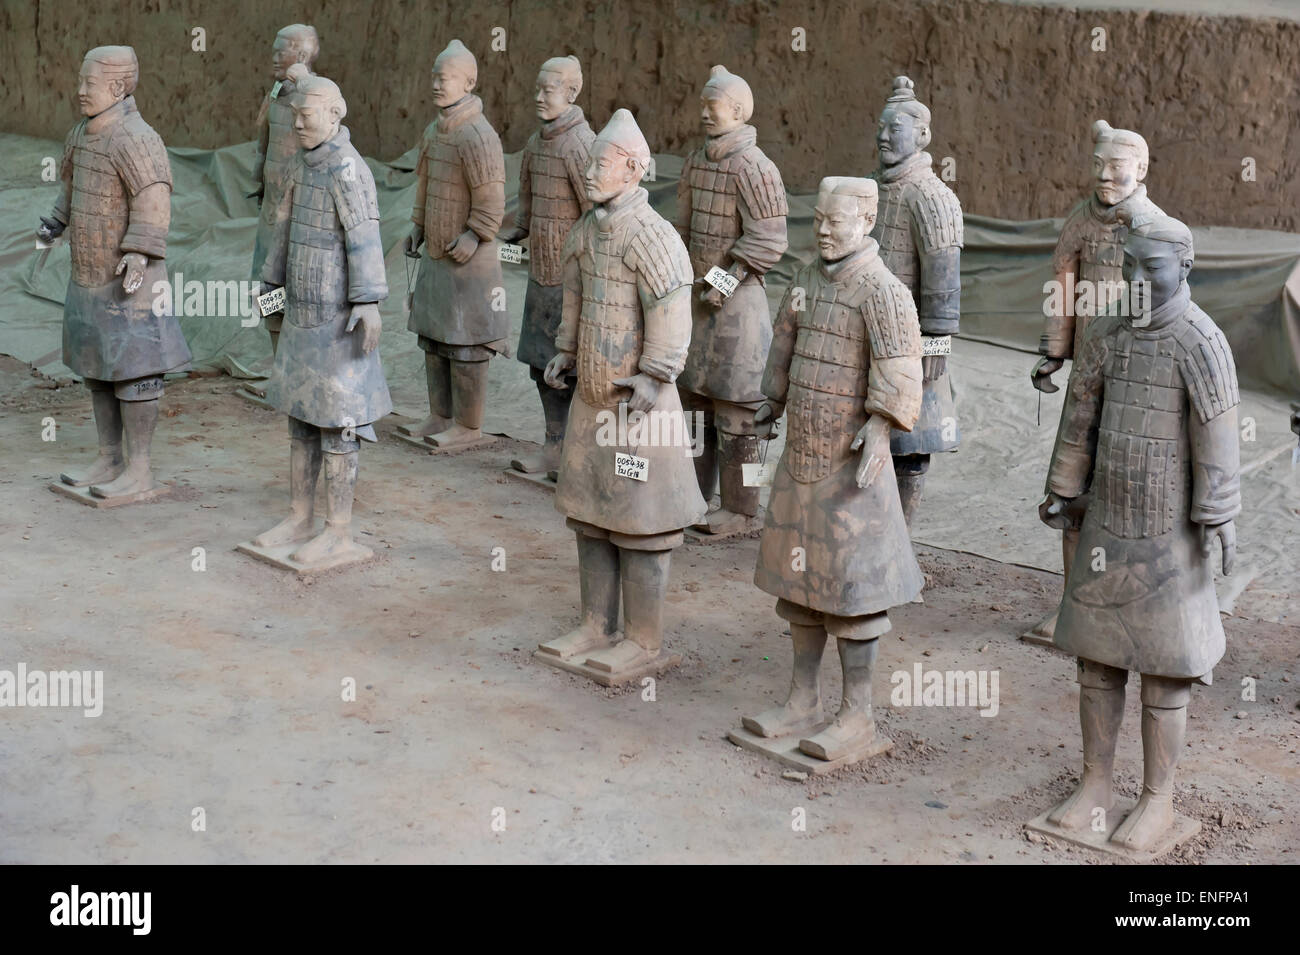 First pit, standing warriors in a row, figures, Emperor Qin Shi Huang Mausoleum, Terracotta Army, Xi'an - Stock Image